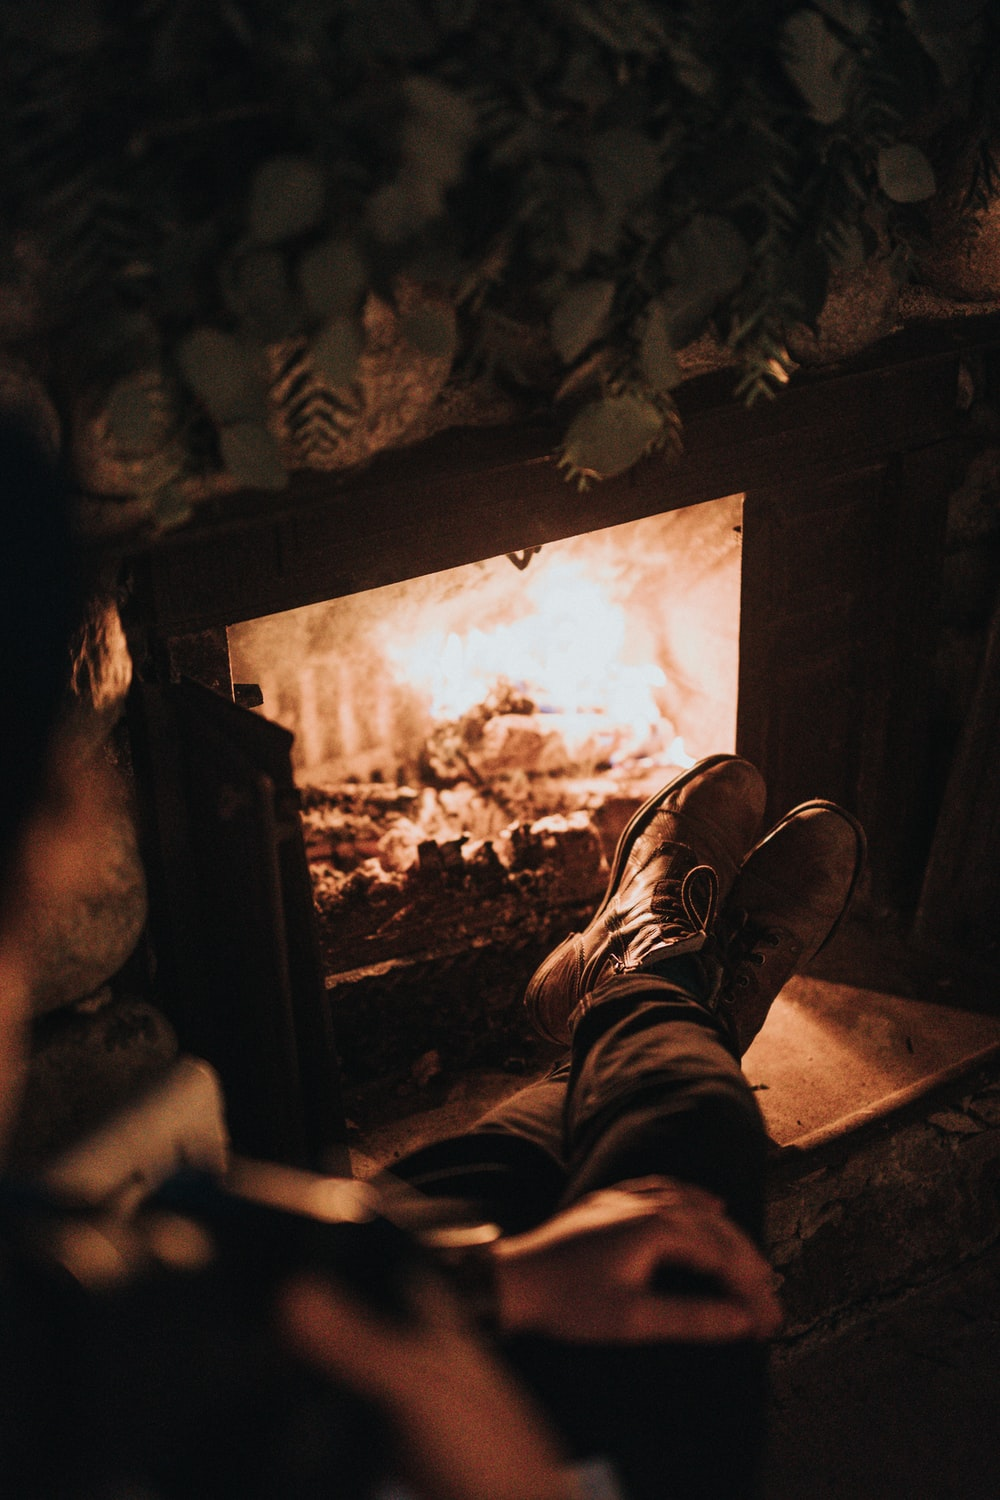 man sitting in front of the fireplace